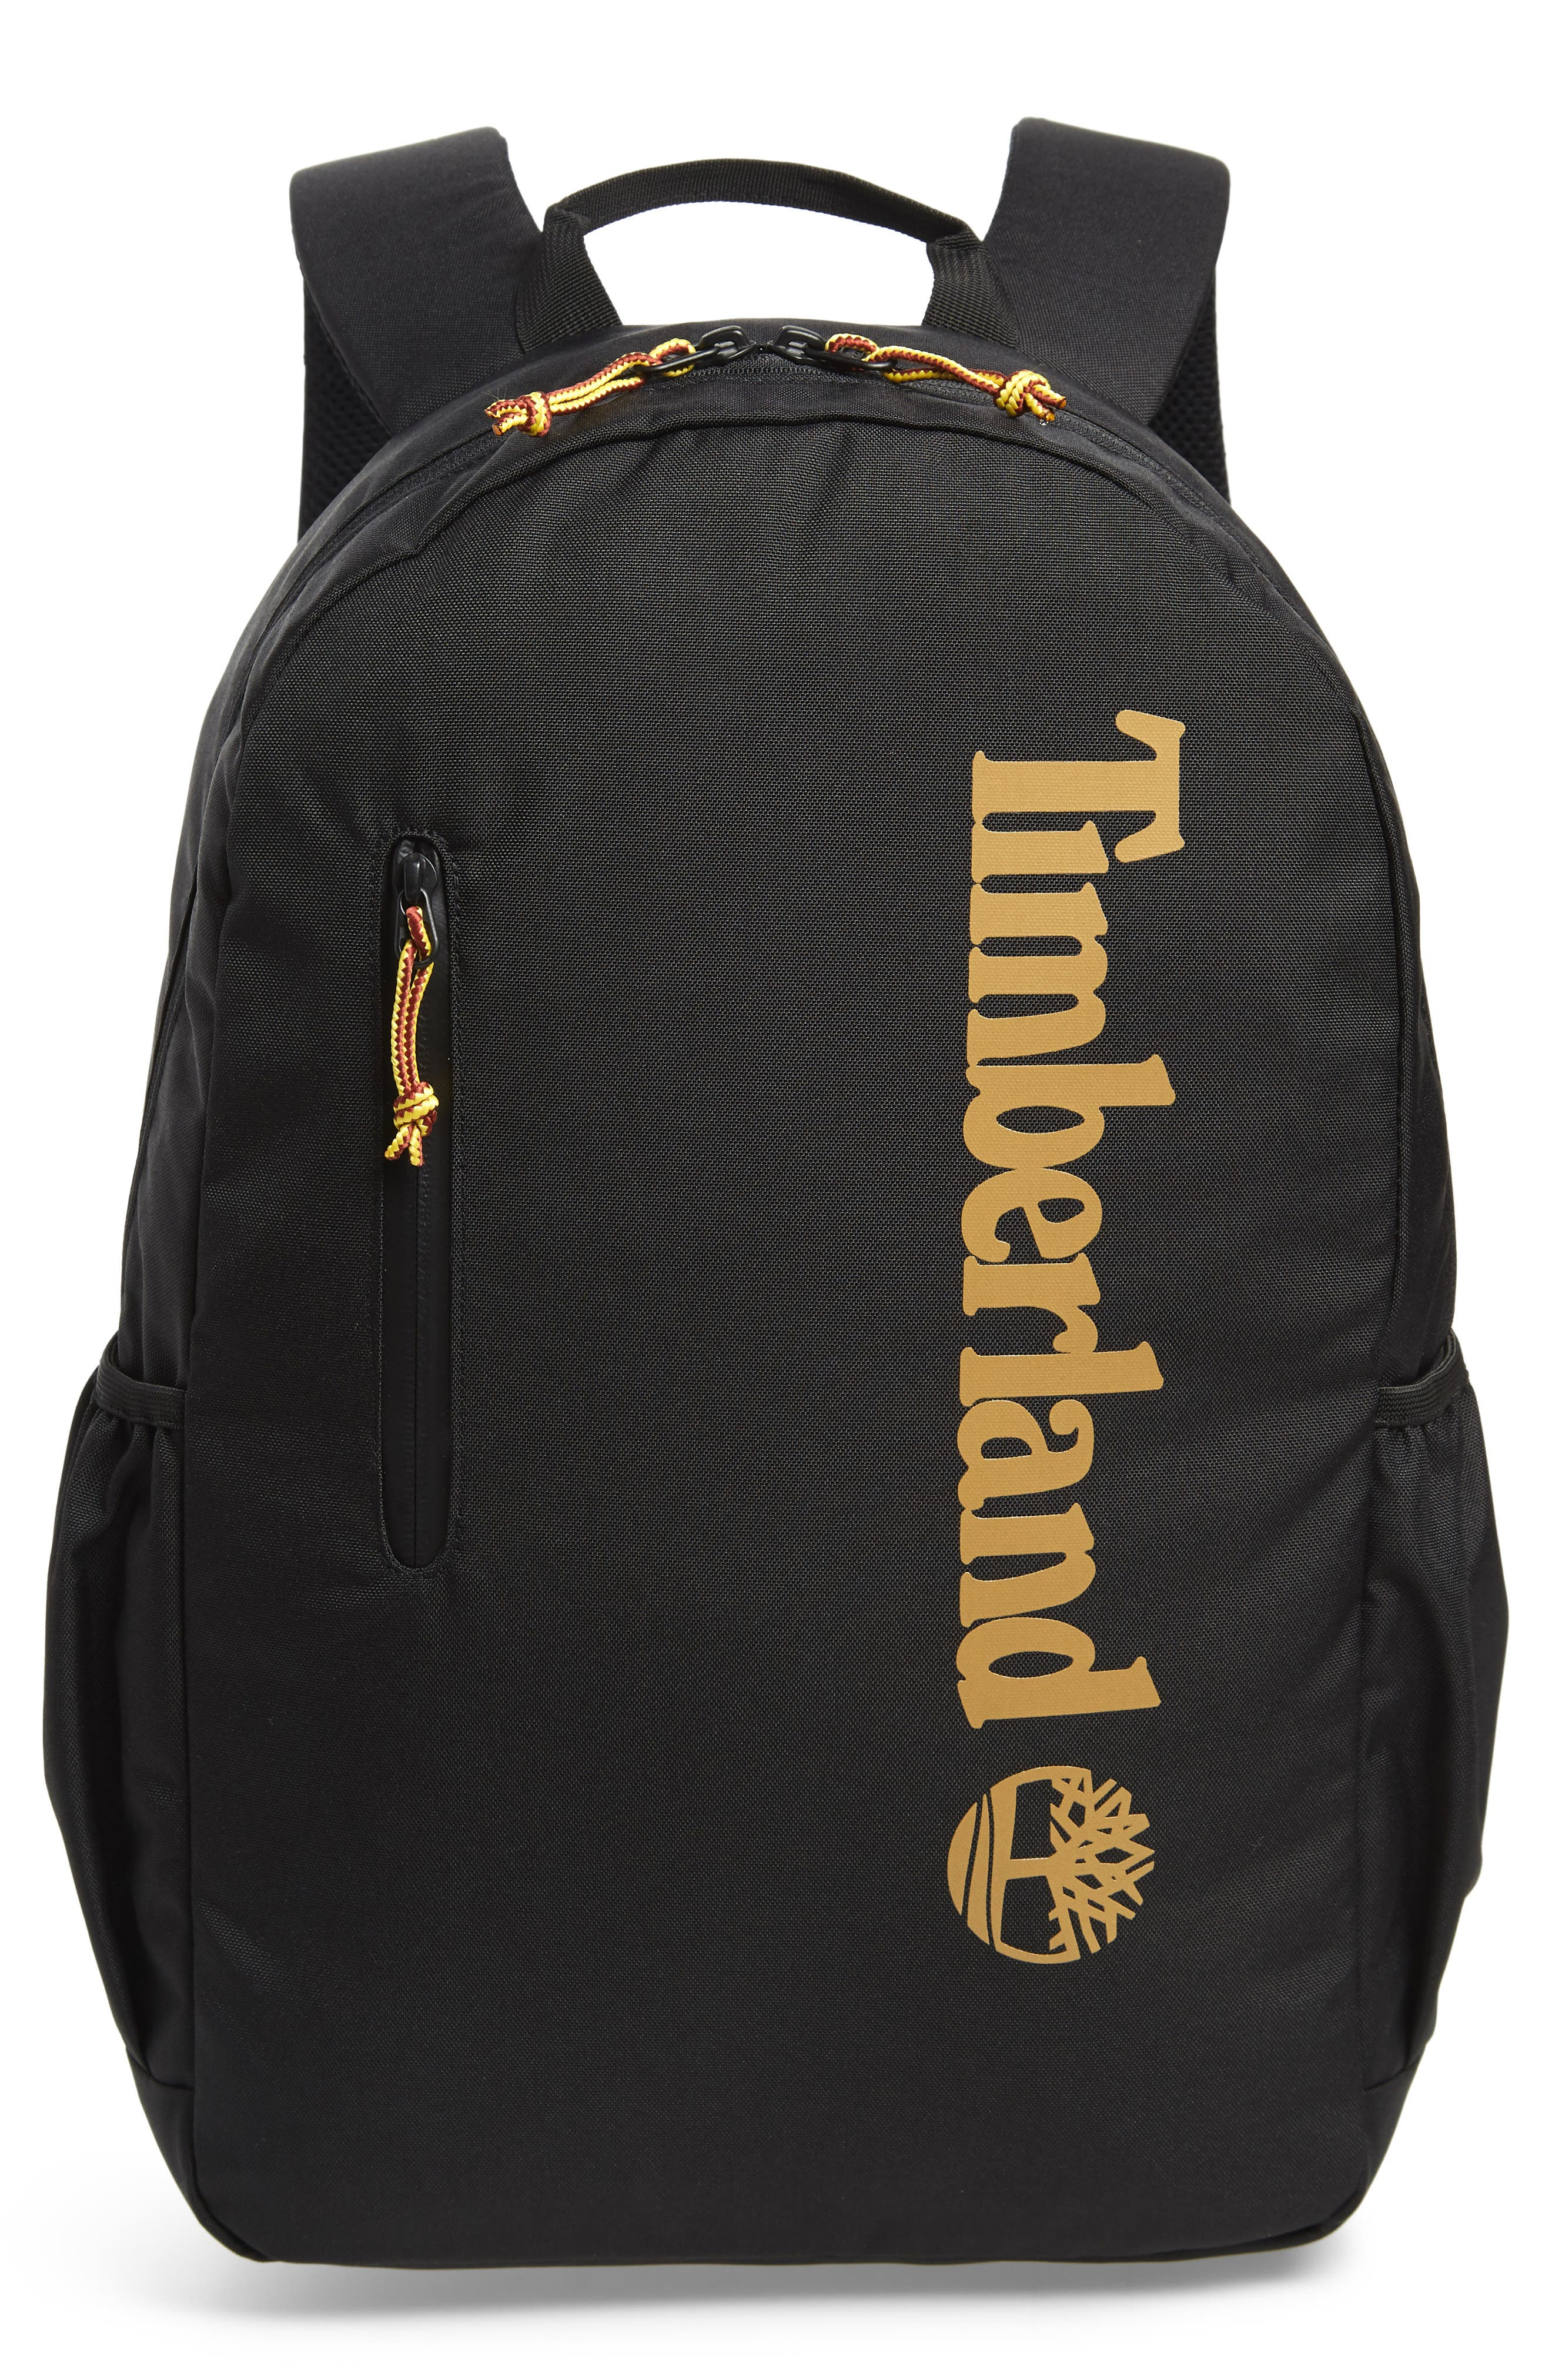 Linear Logo Water Resistant Backpack,                         Main,                         color, BLACK W/ WHEAT LOGO